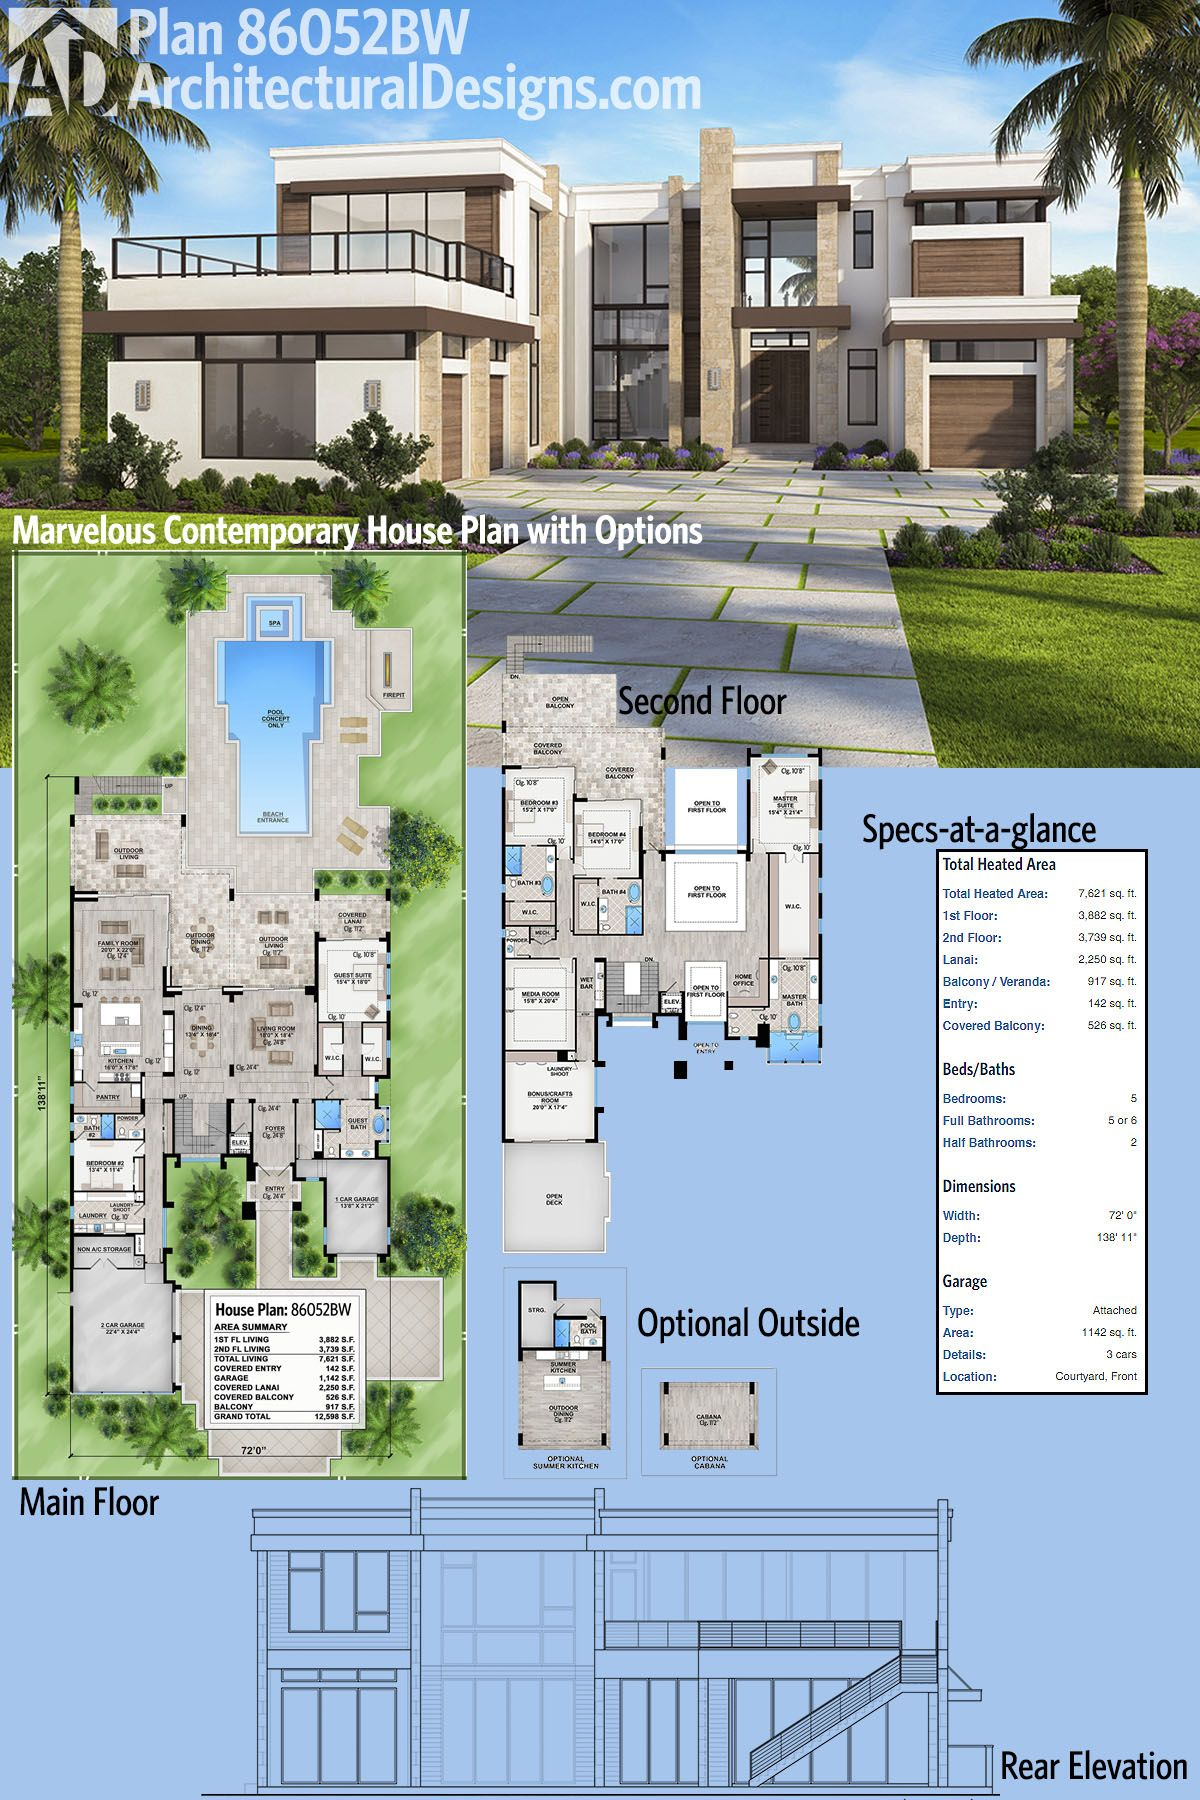 Plan 86052bw Marvelous Contemporary House Plan With